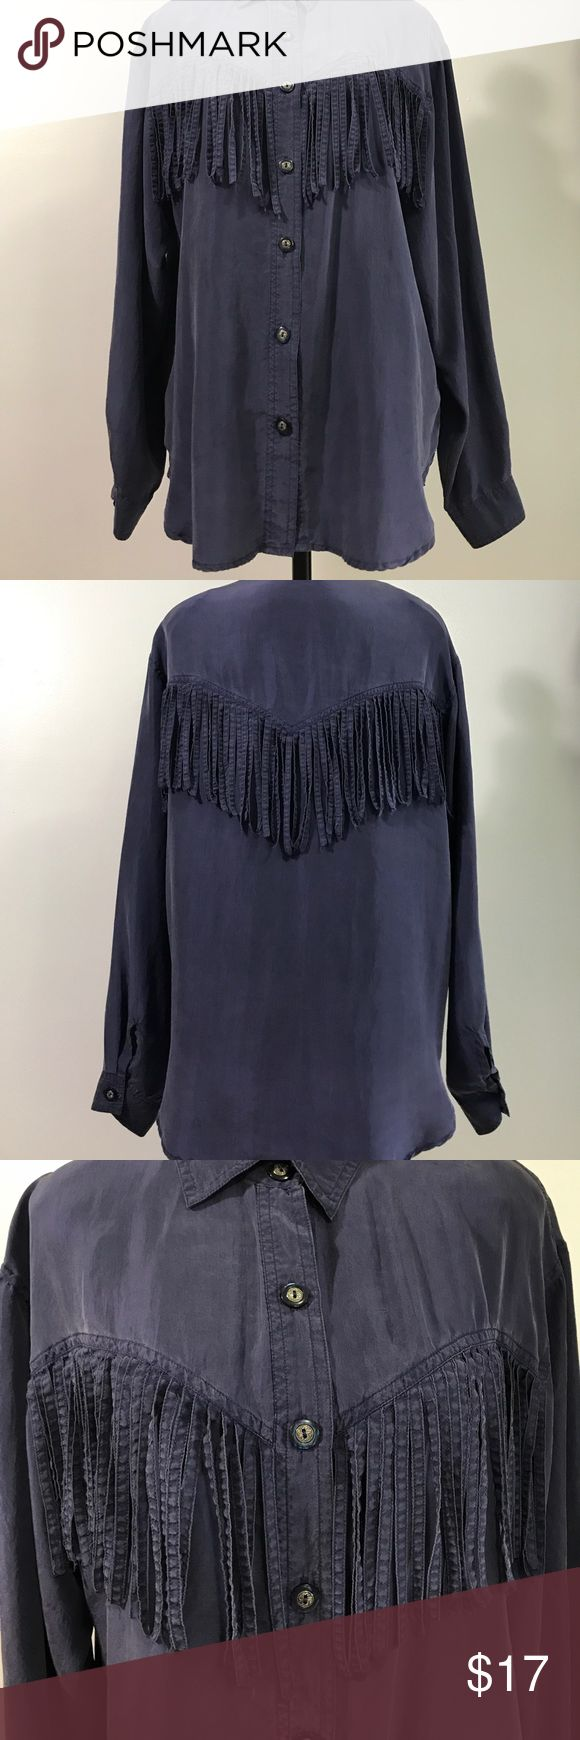 Figi Sport Vintage Silk Fringed Blouse- Med Beautiful silk shirt with truly unique styling! Lovely silver & blue buttons & shoulder pads are easily removable. Perfect condition! Figi Sport Tops Button Down Shirts